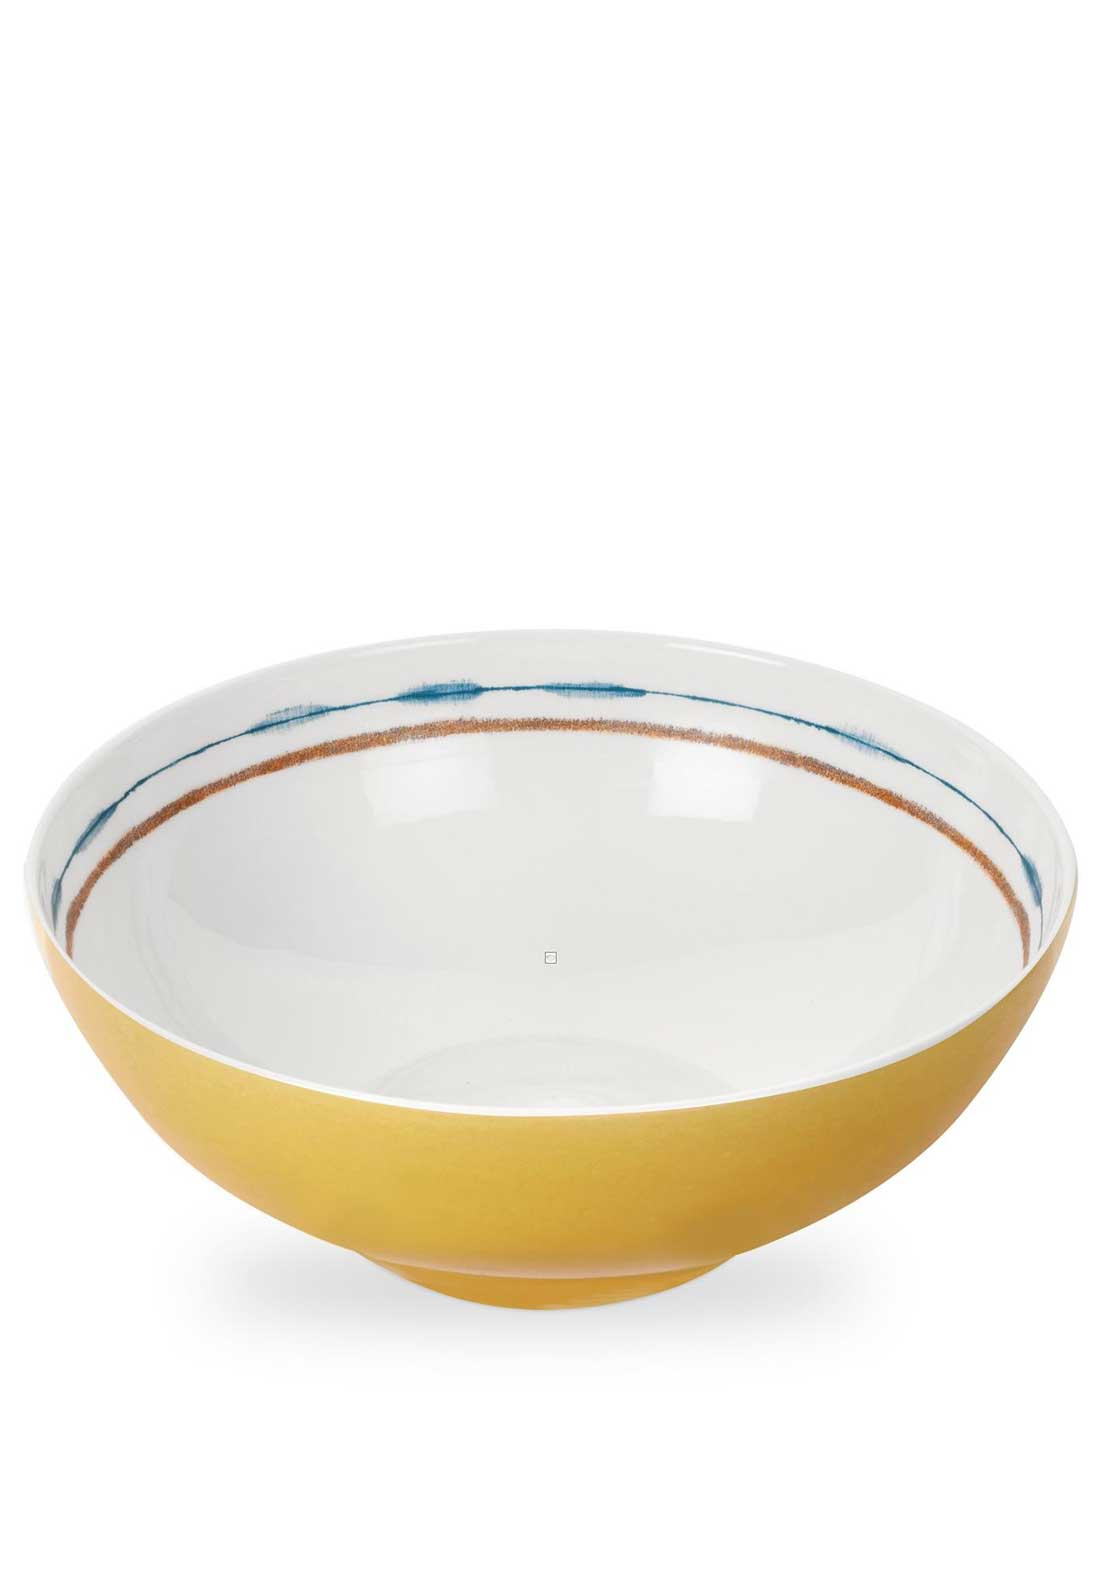 Portmeirion Coast Large Salad Bowl, Yellow